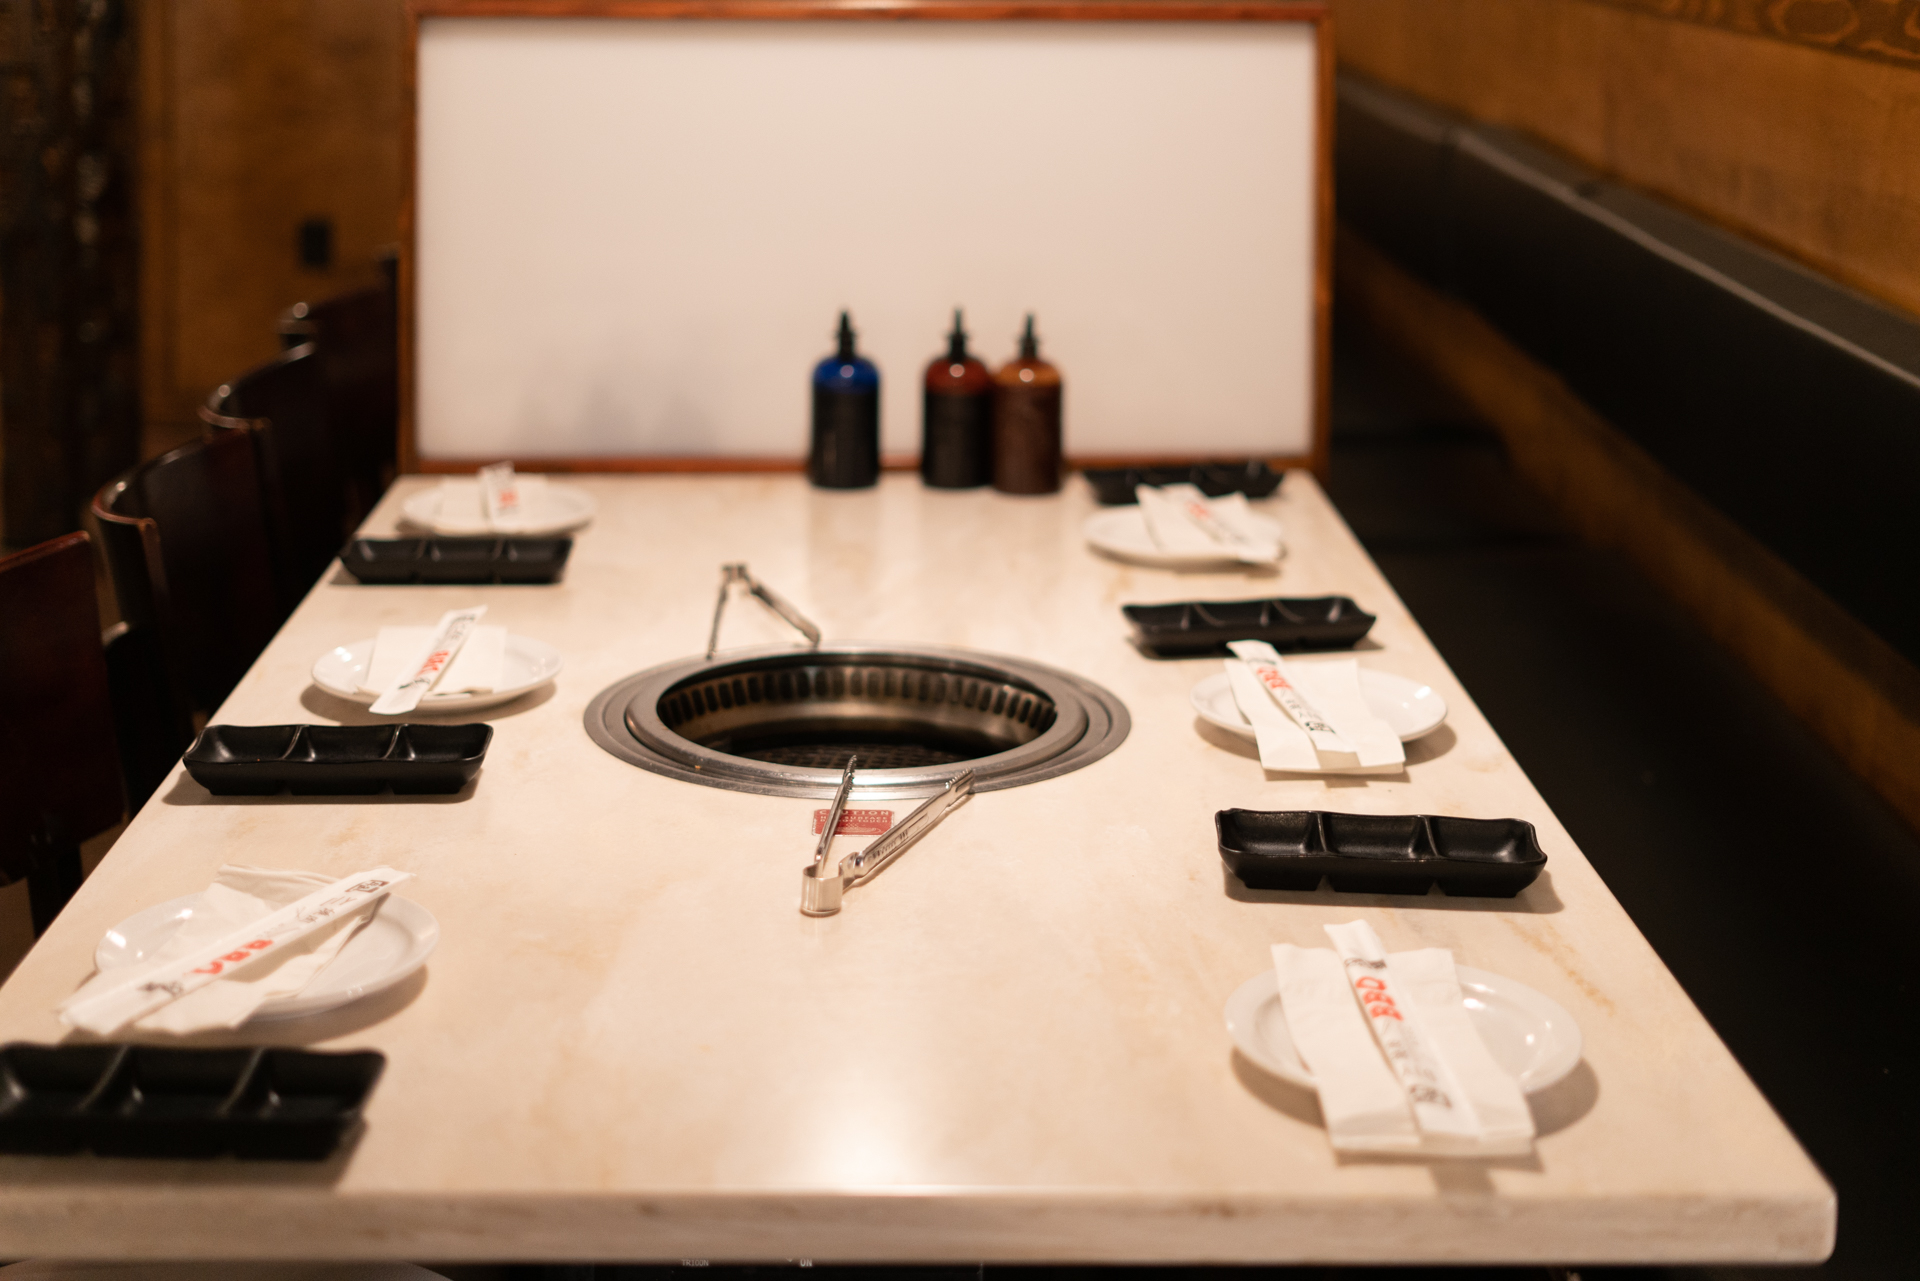 Gyu-Kaku - Japanese restaurant with personal charcoal grills at every table.